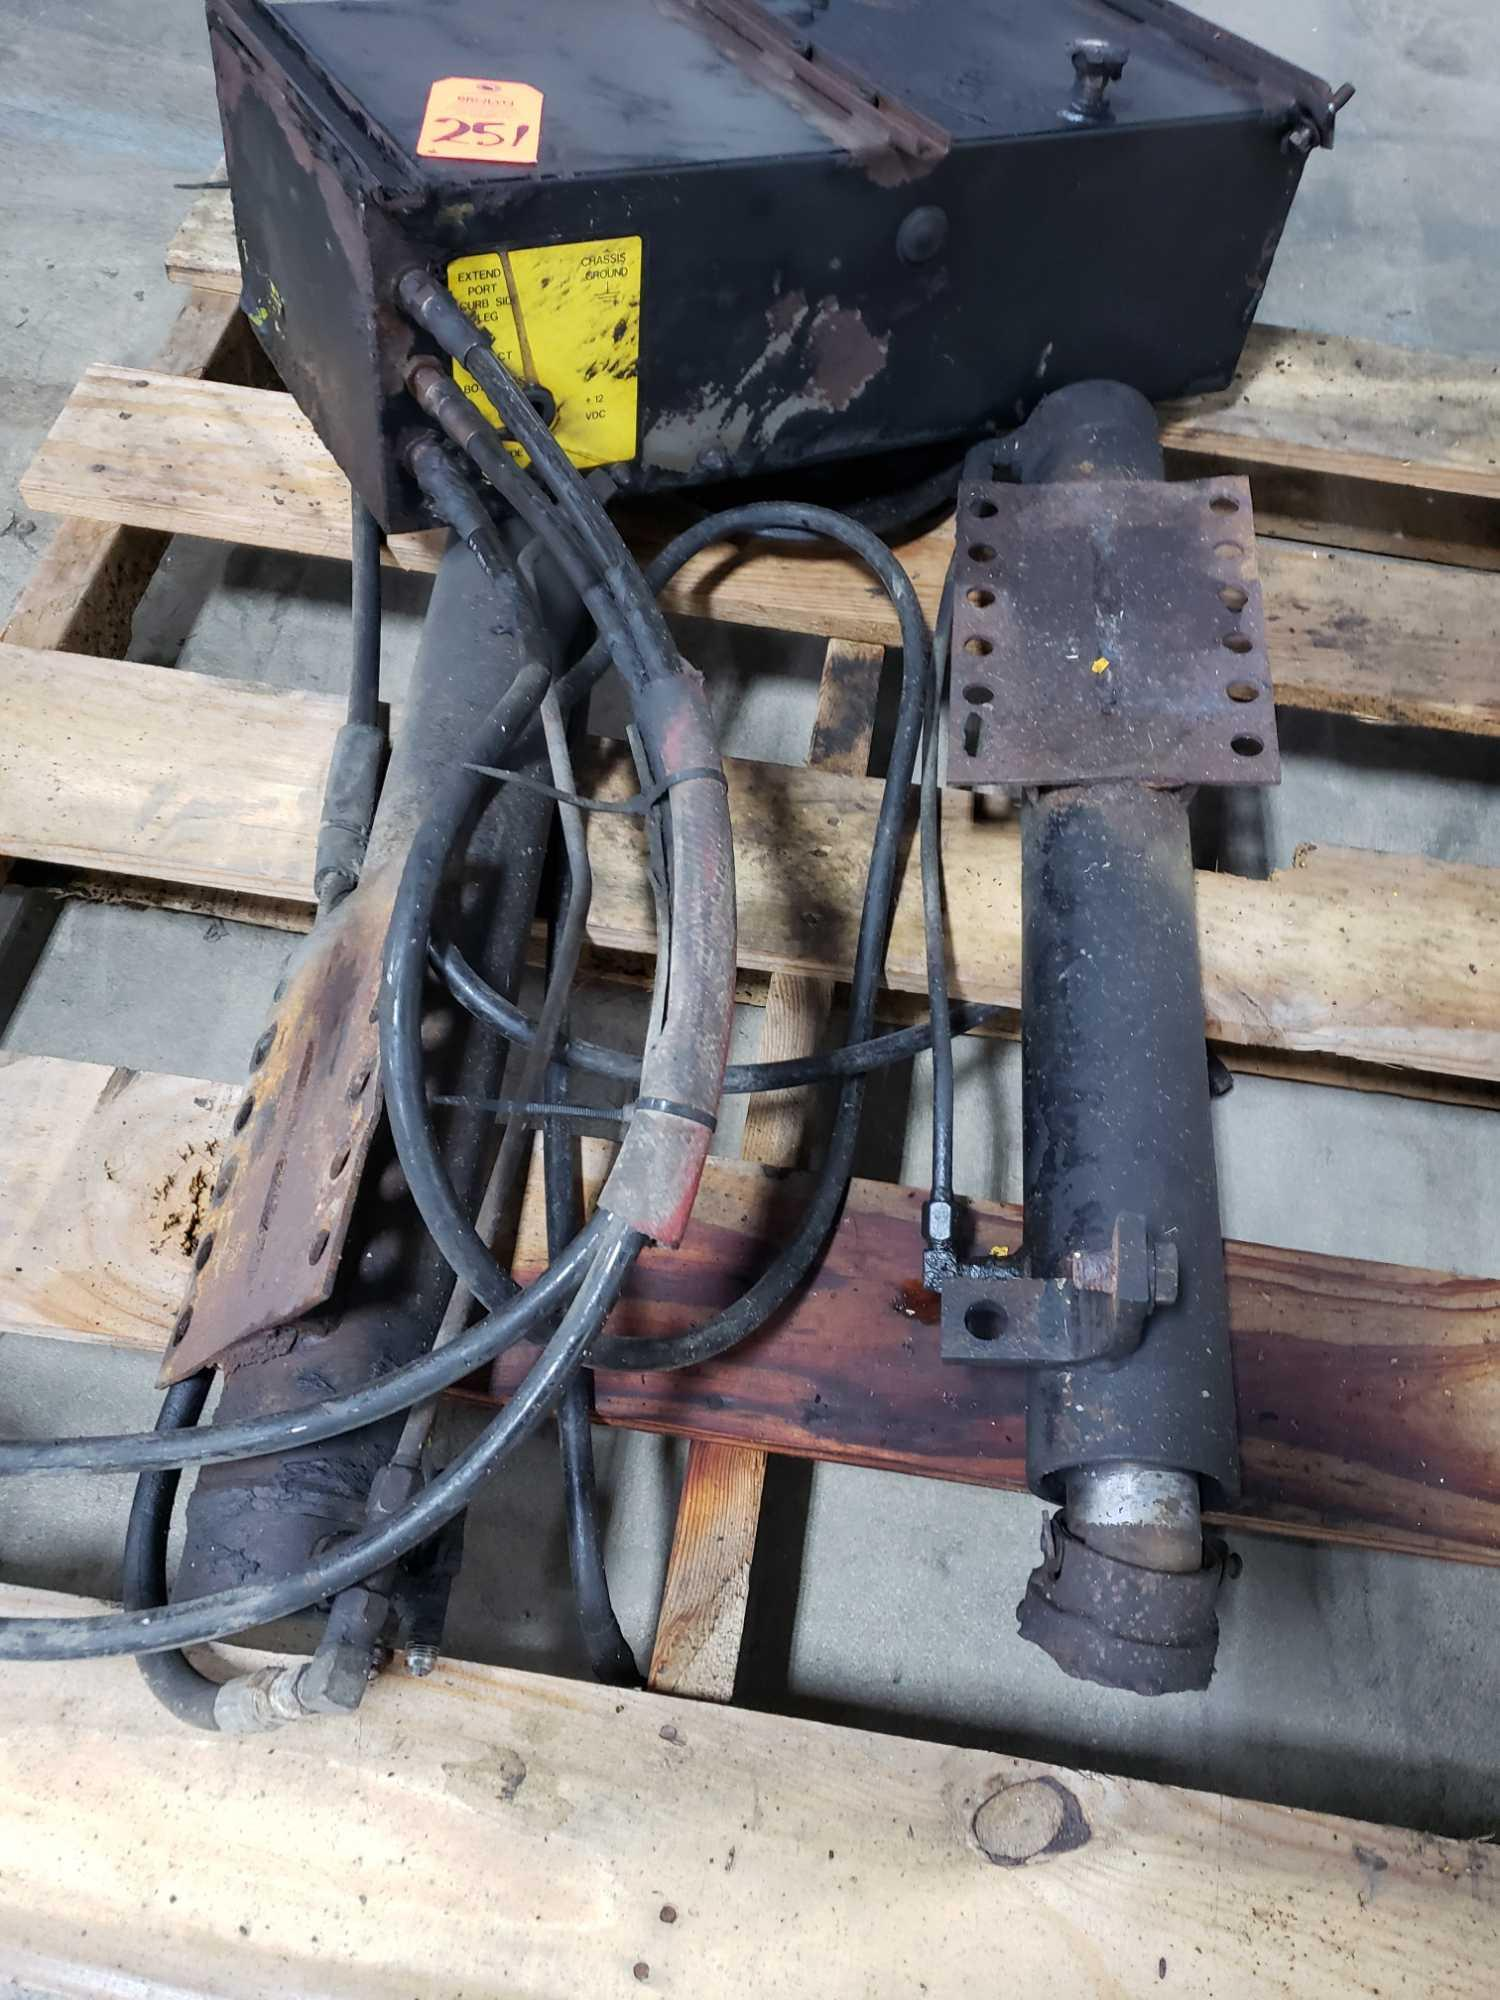 Lot 251 - Milwaukee Truck-Lift hydraulic unit with two rams.